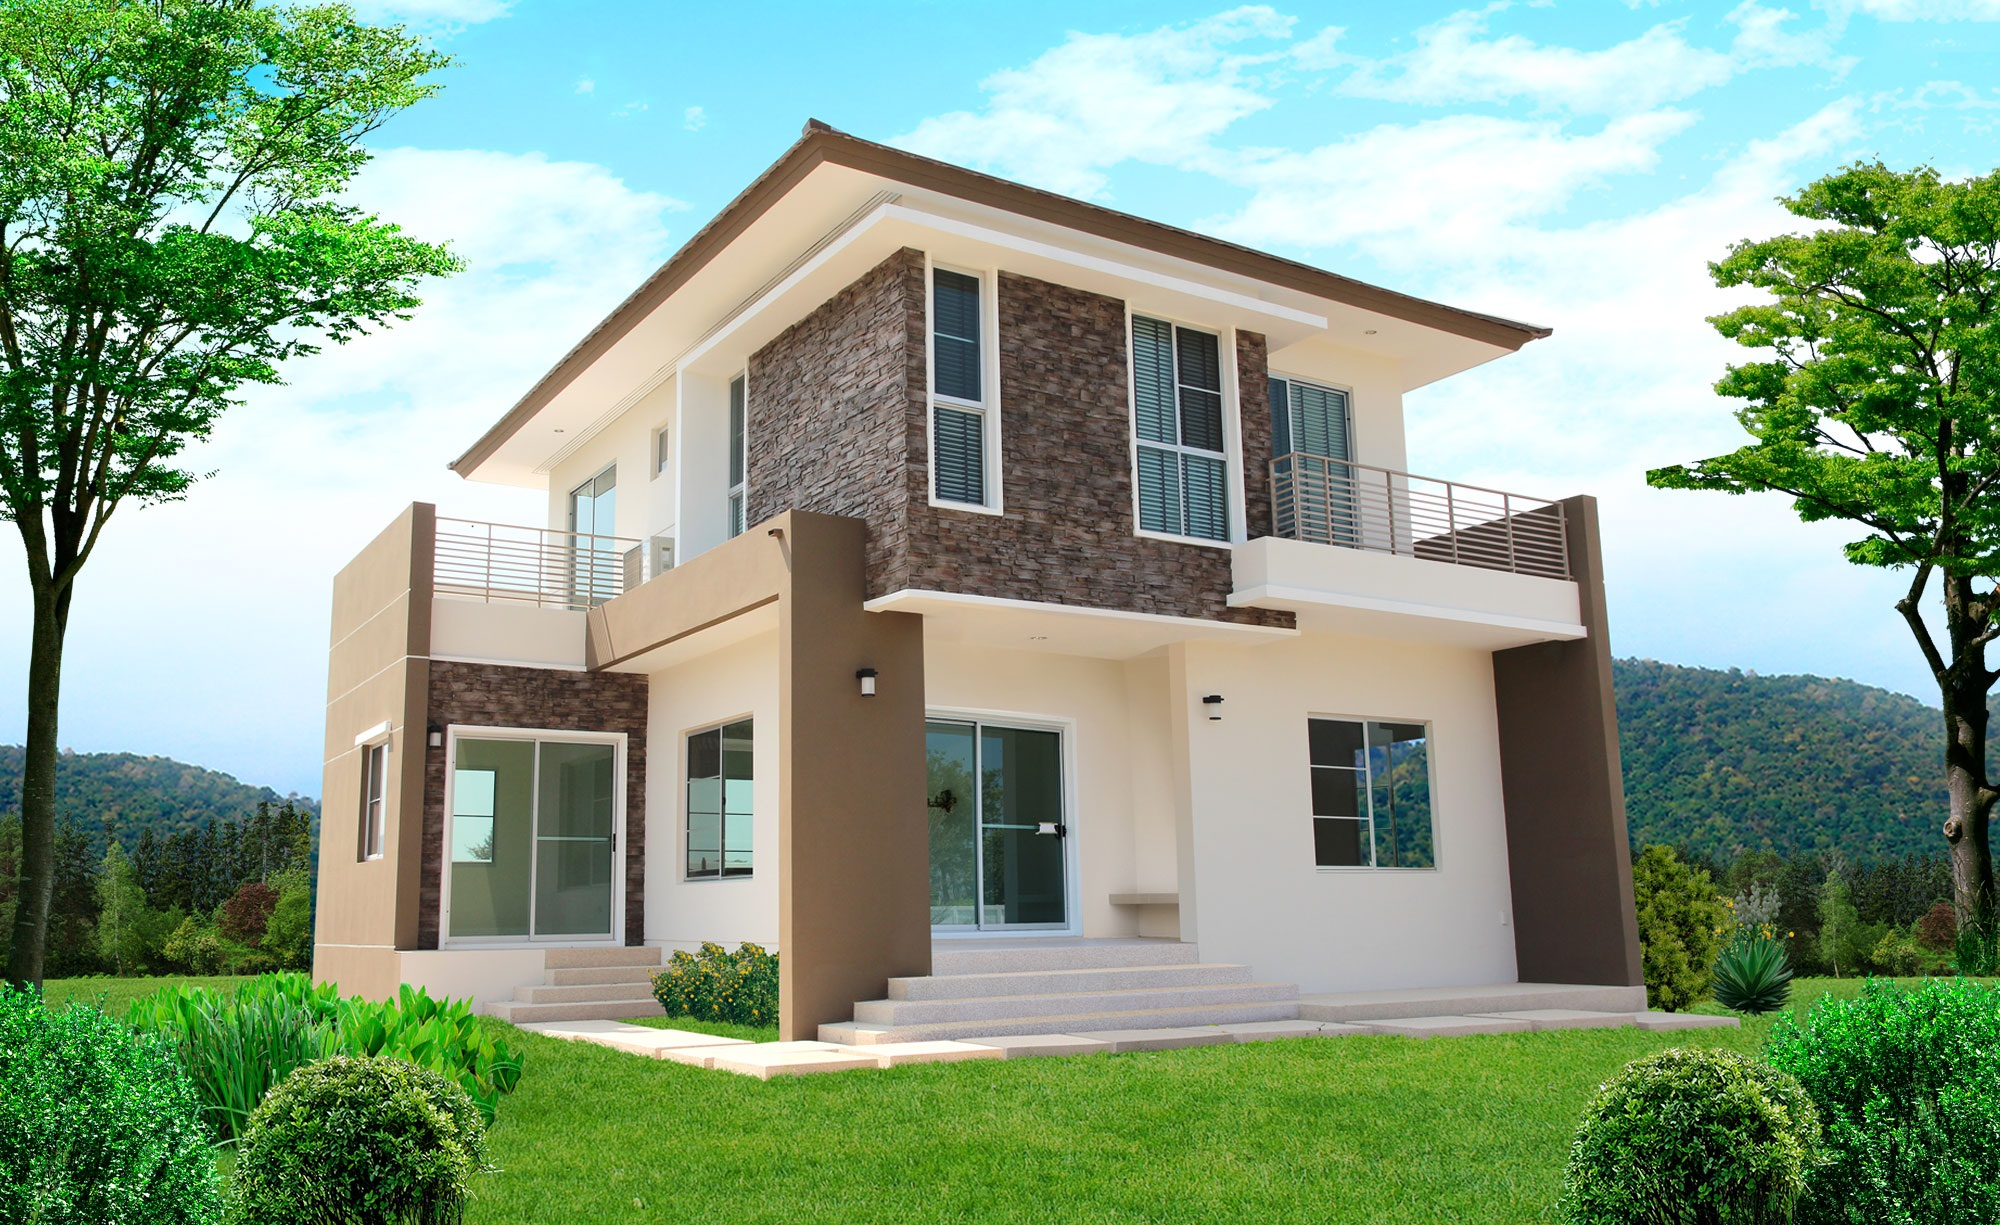 How Can a General Contractor Help You for Your Home Improvement Project?